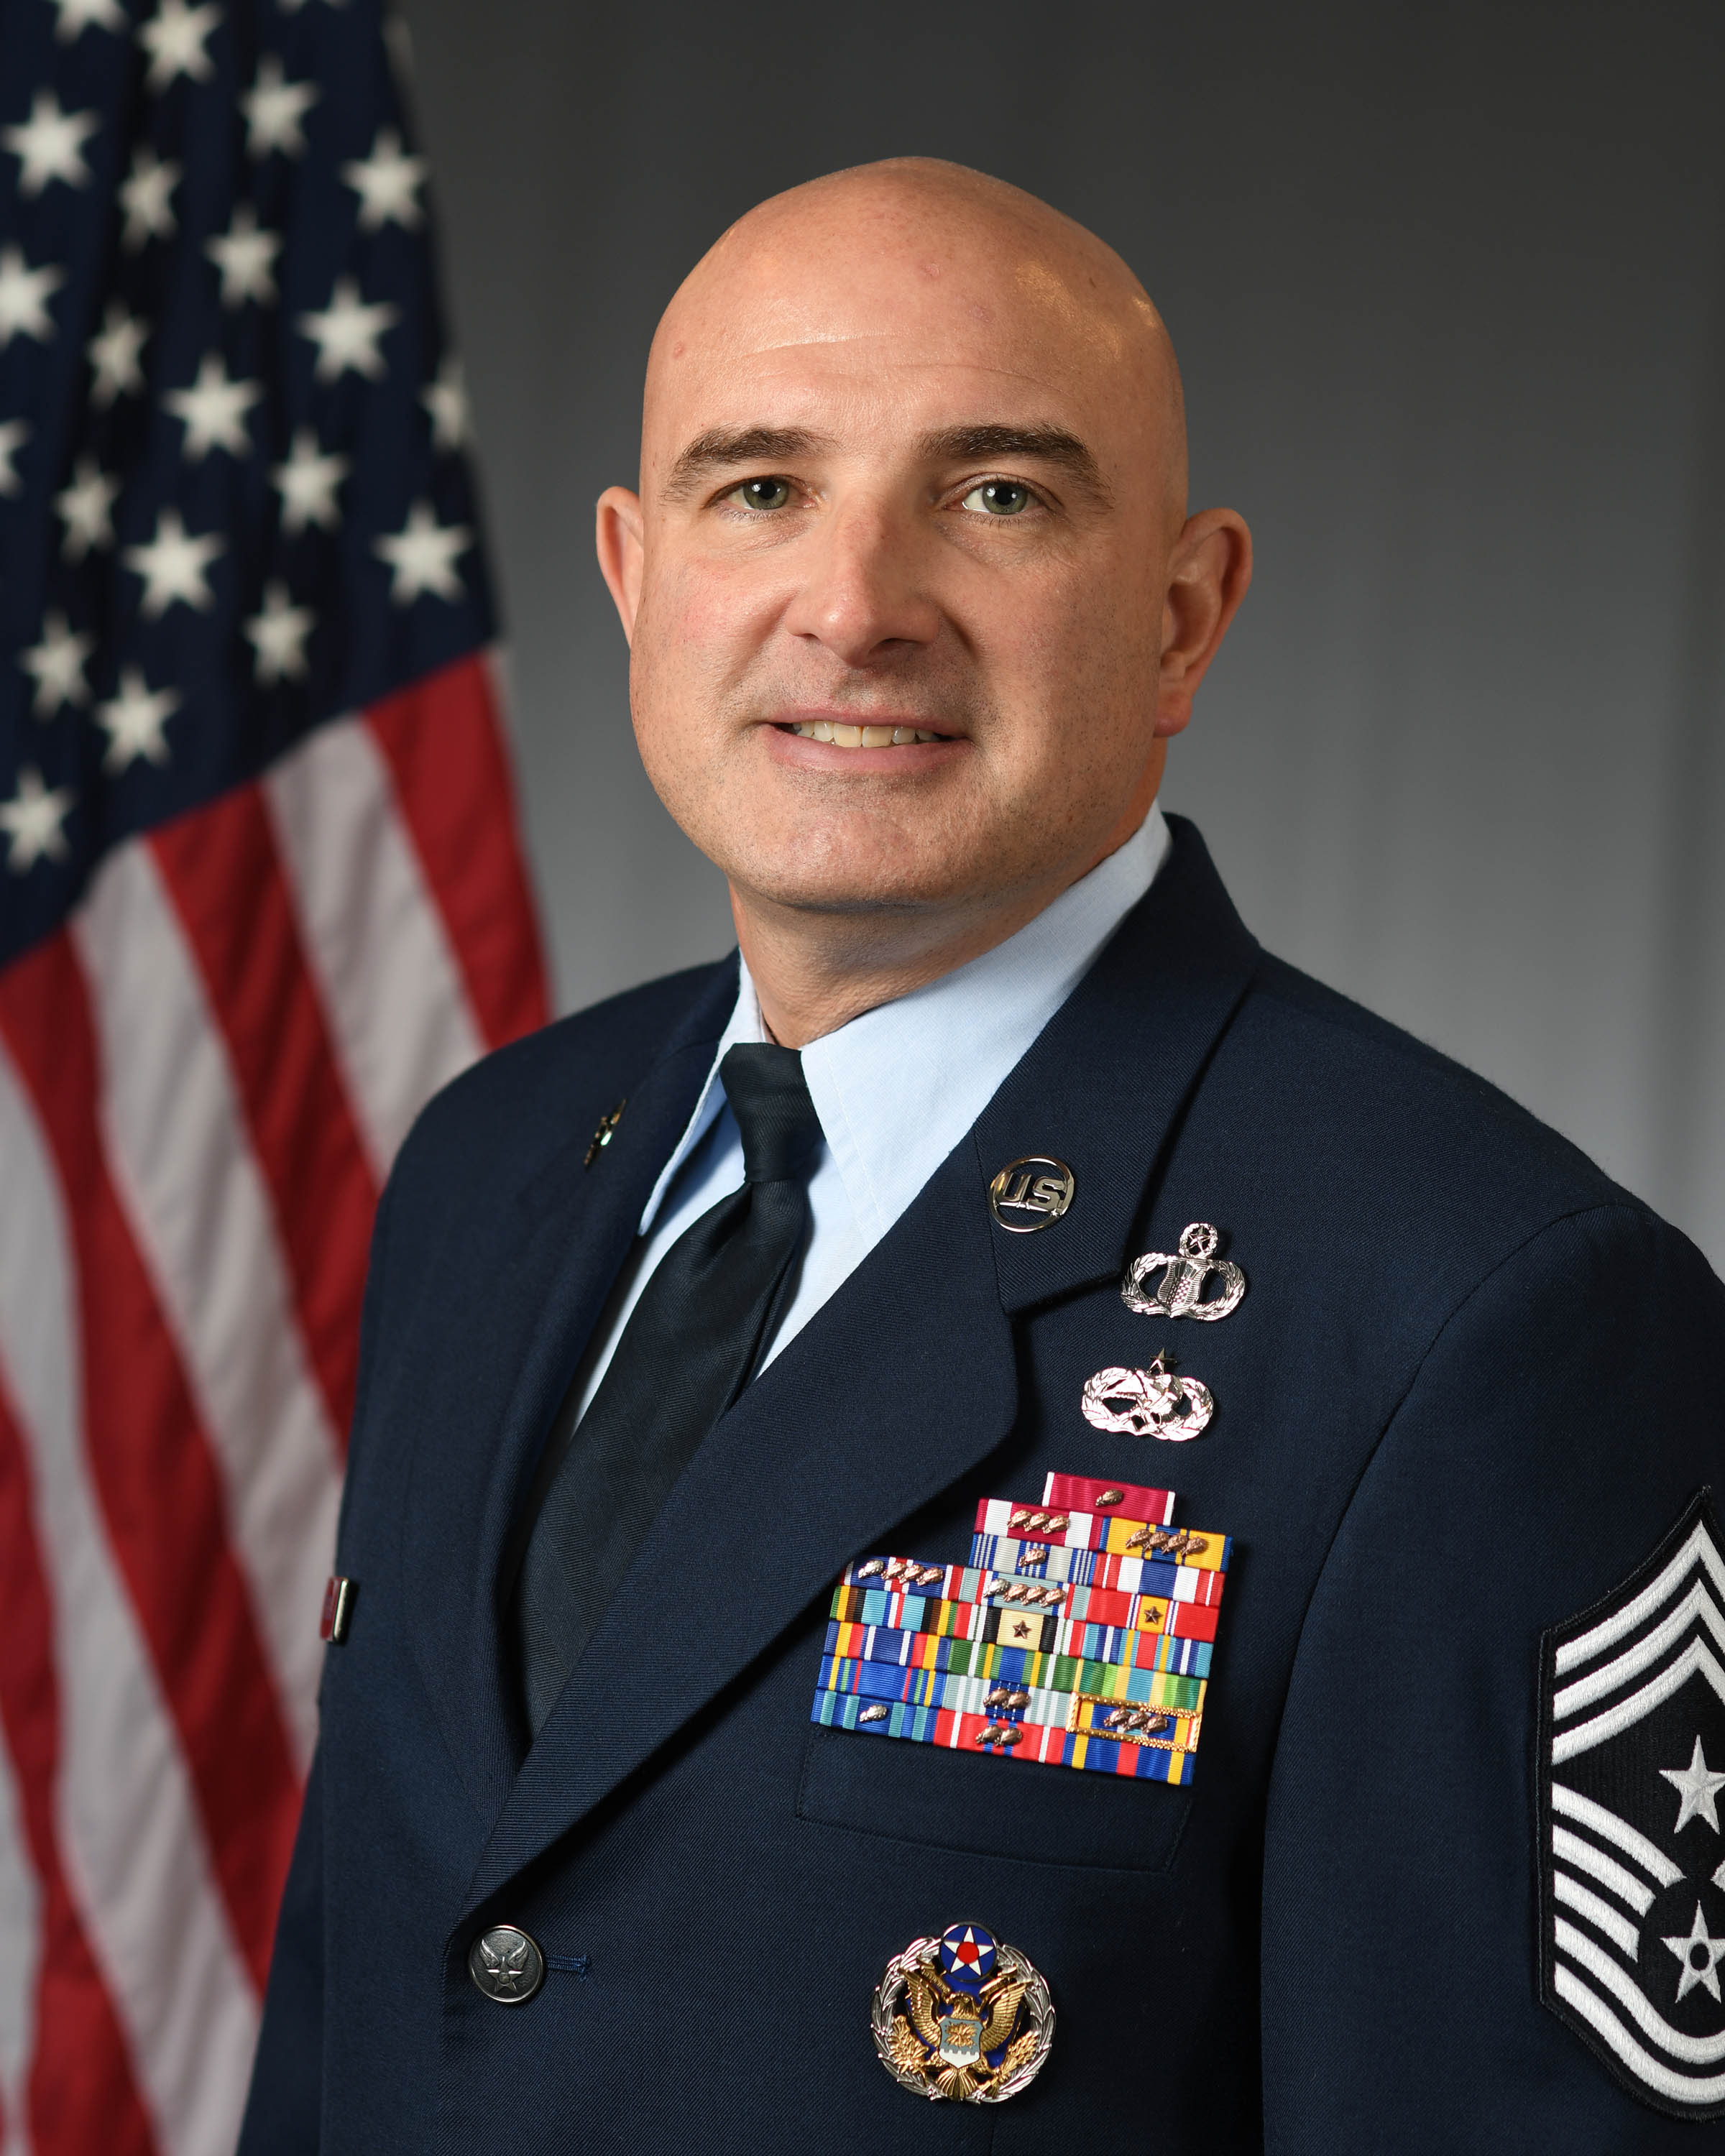 Command Chief Master Sgt. Christopher Yevchak